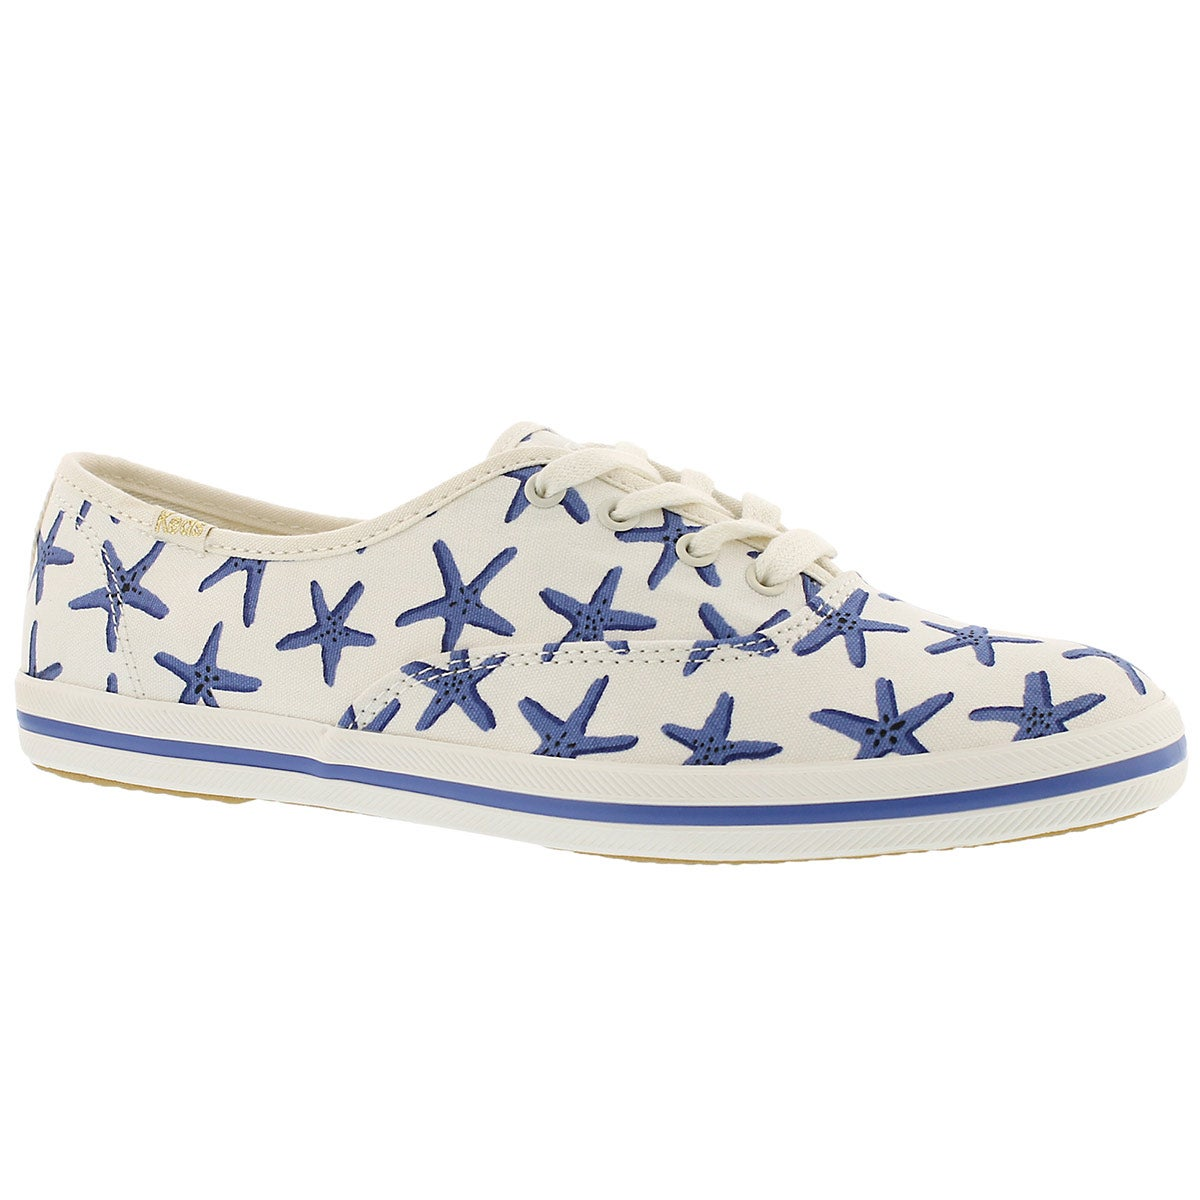 Women's KATE SPADE white/blue sneakers